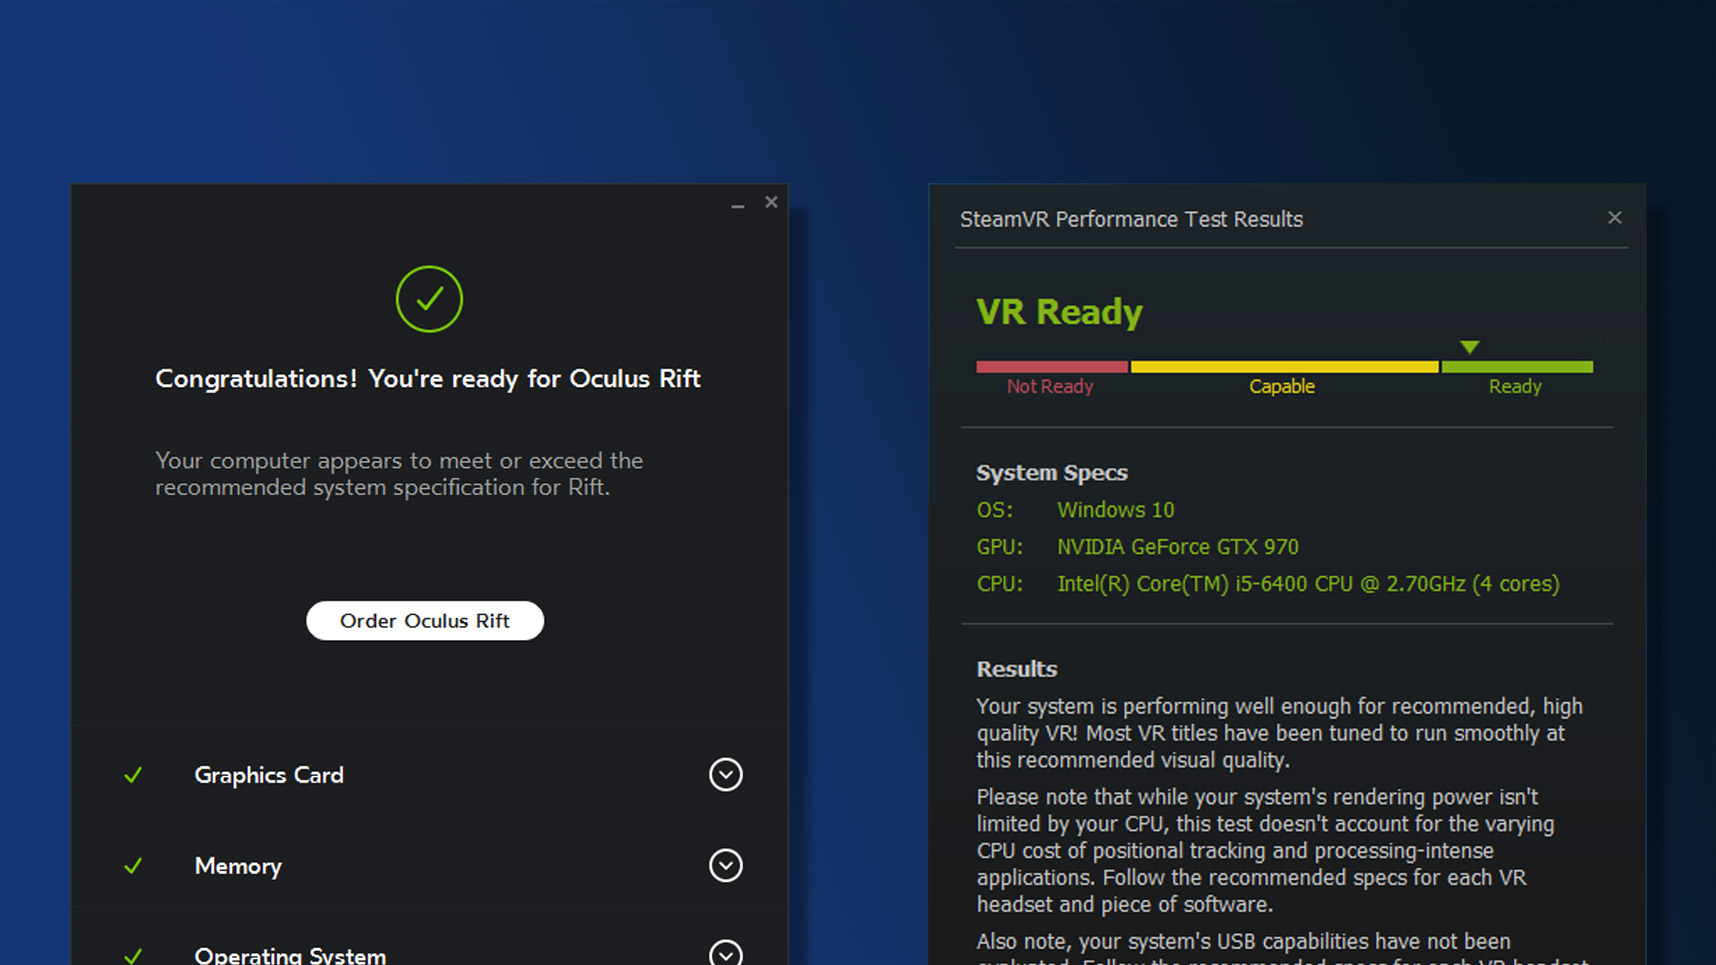 Check if Your PC is VR Ready for Oculus Rift, HTC Vive, and Windows VR